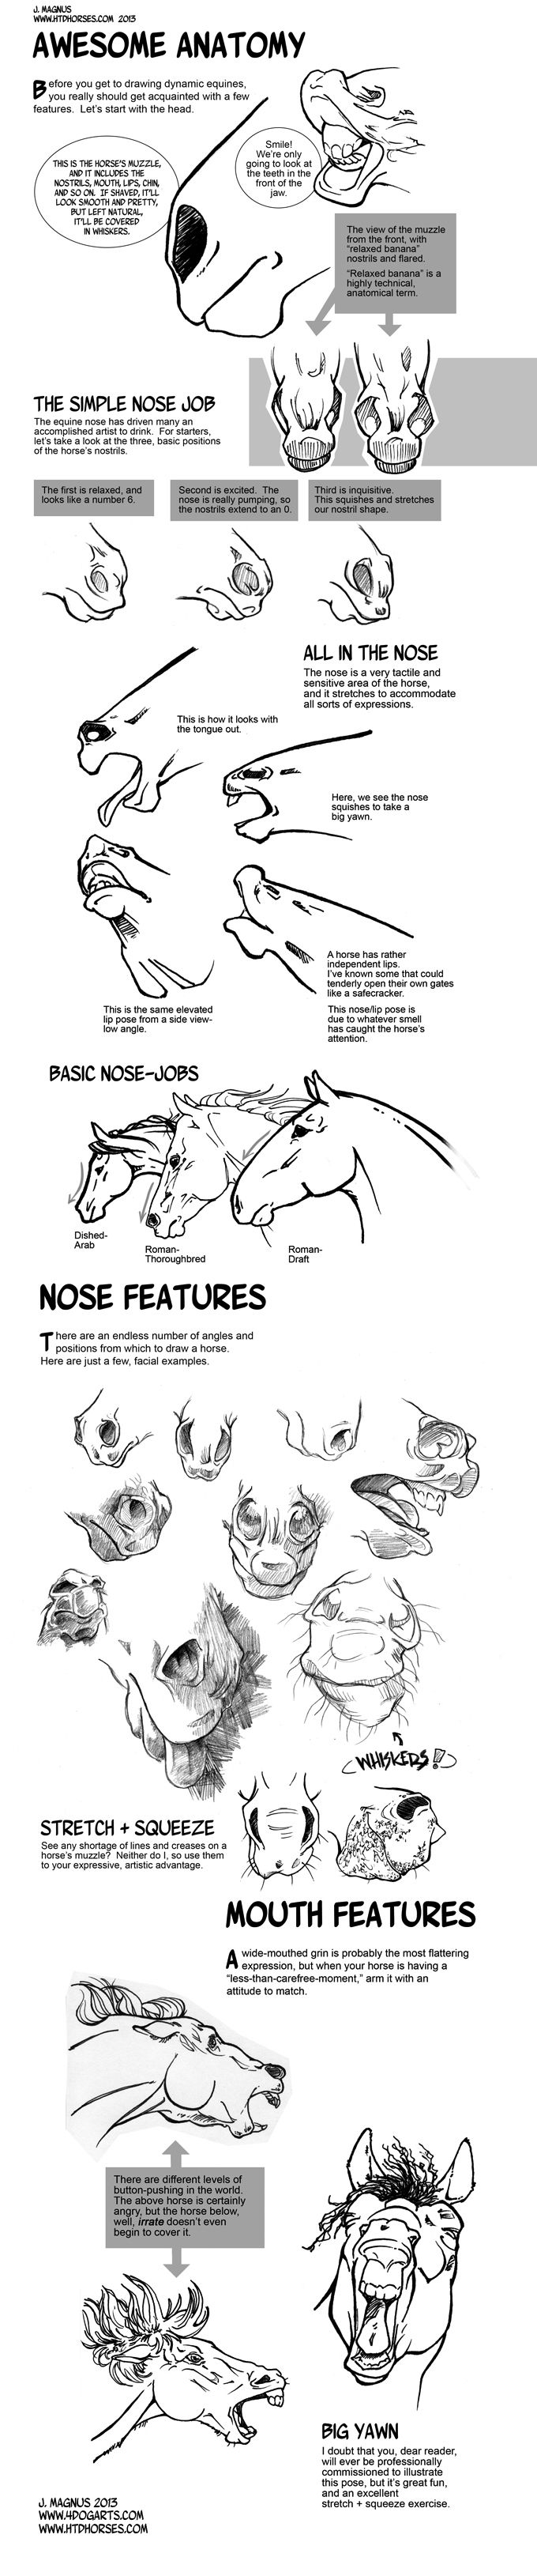 Horse Anatomy Part I by sketcherjak.deviantart.com on @deviantART